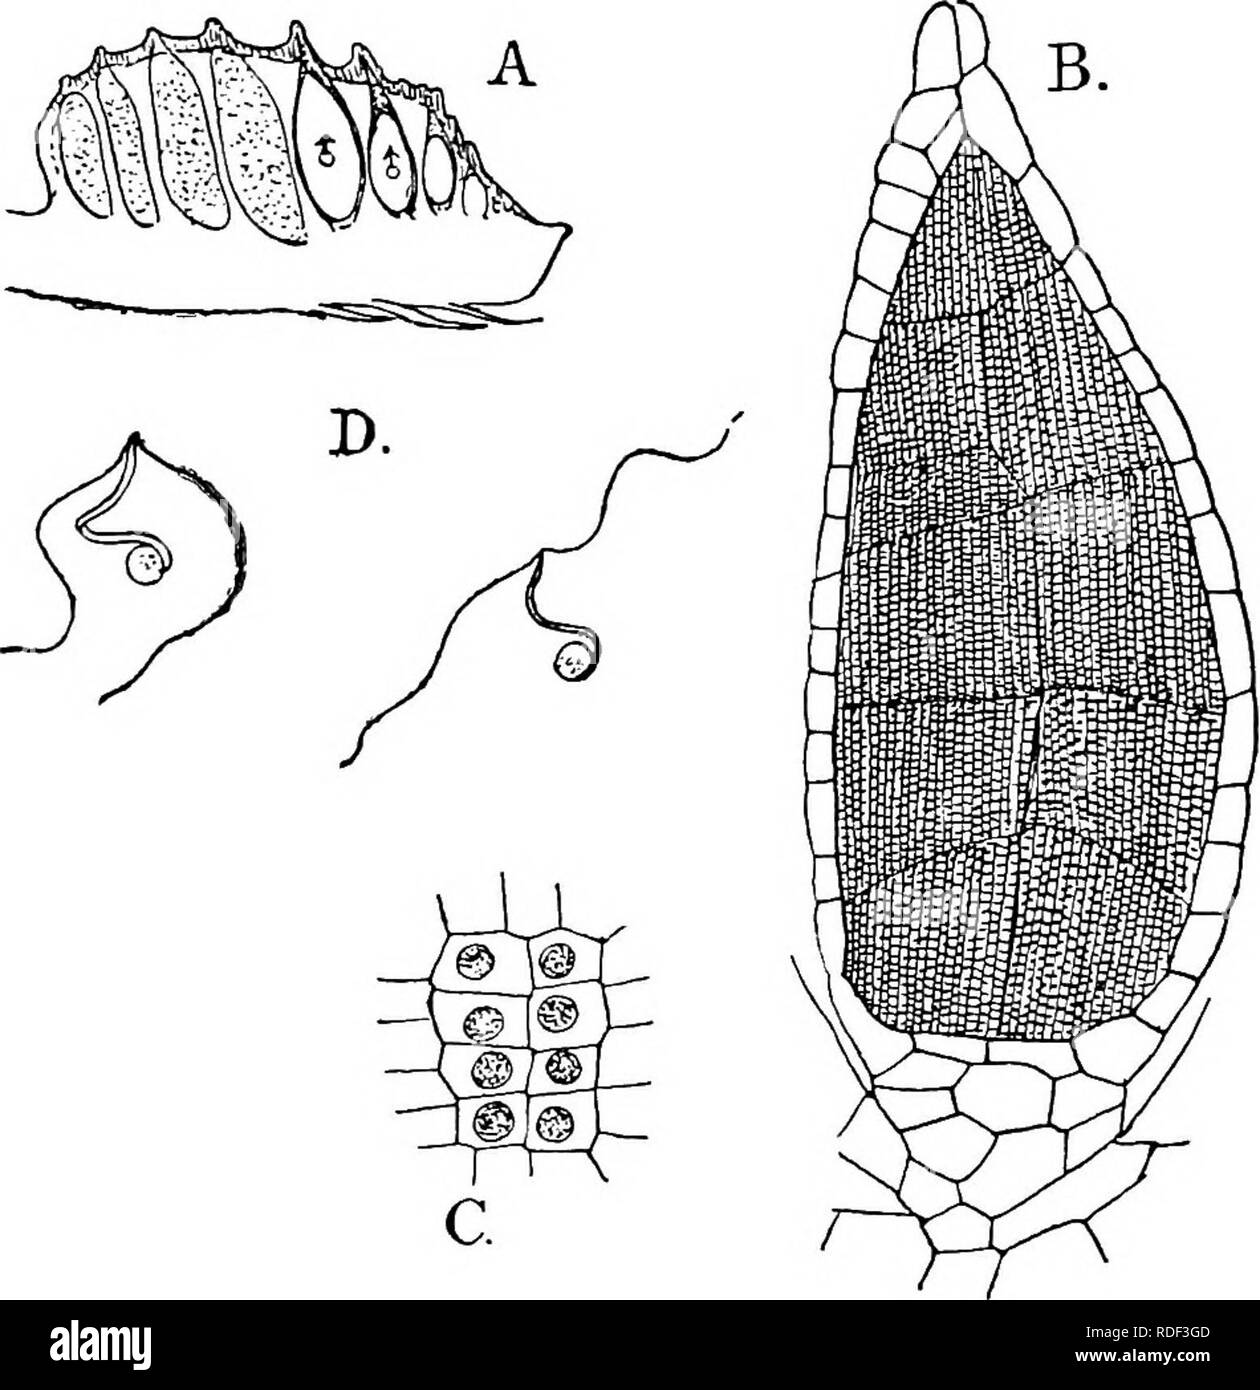 hight resolution of  the structure and development of mosses and ferns archegoniatae plant morphology mosses ferns muscine hepa ticje march ant i ales si seated as